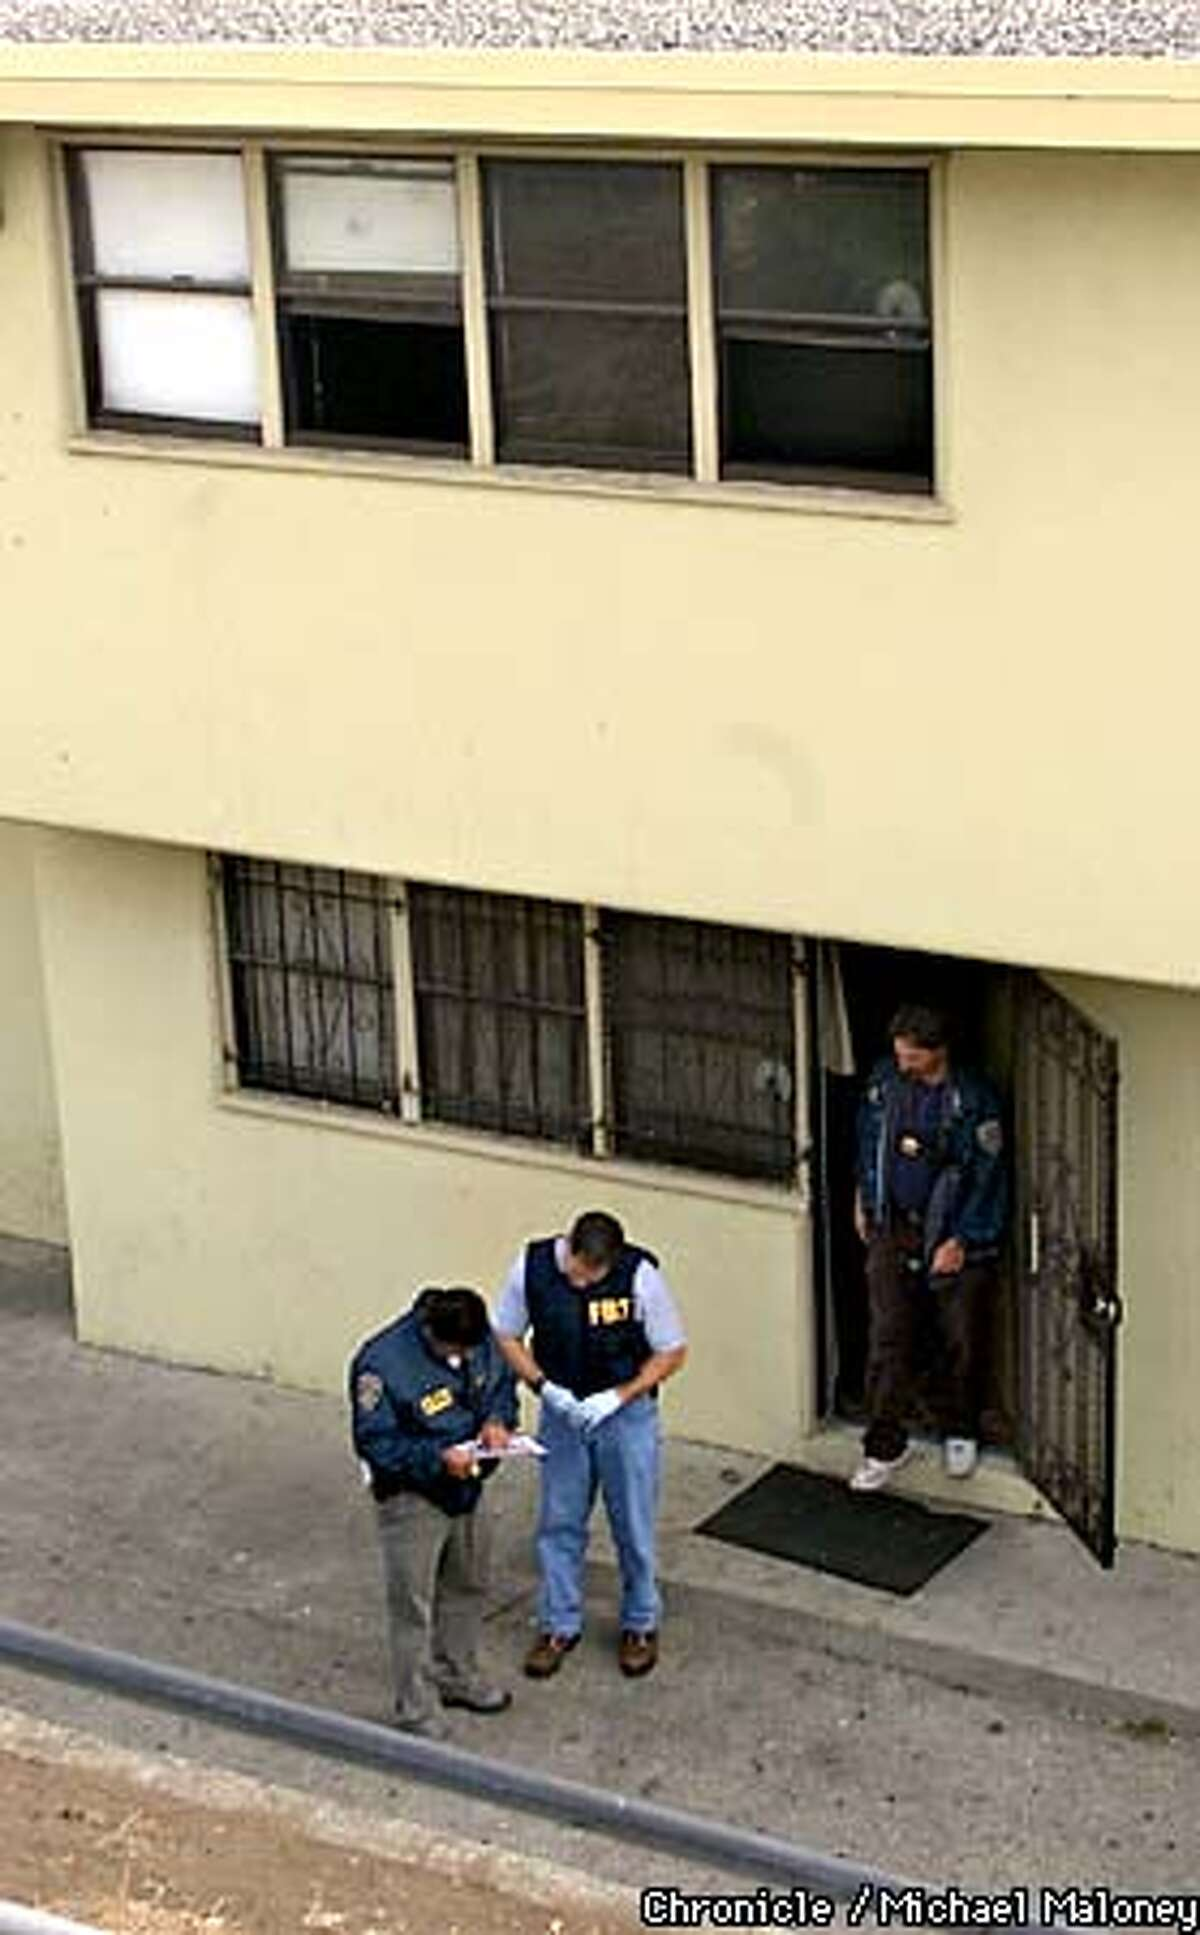 FBI and SFPD officers search an apartment at 38 Harbor Road in the Hunters Point area of SF. Starting at 6am this morning, nearly 200 FBI and bay area police officers carried out numerous search and arrest warrants to apprehend drug and weapons violators in SF and other bay area cities. CHRONICLE PHOTO BY MICHAEL MALONEY